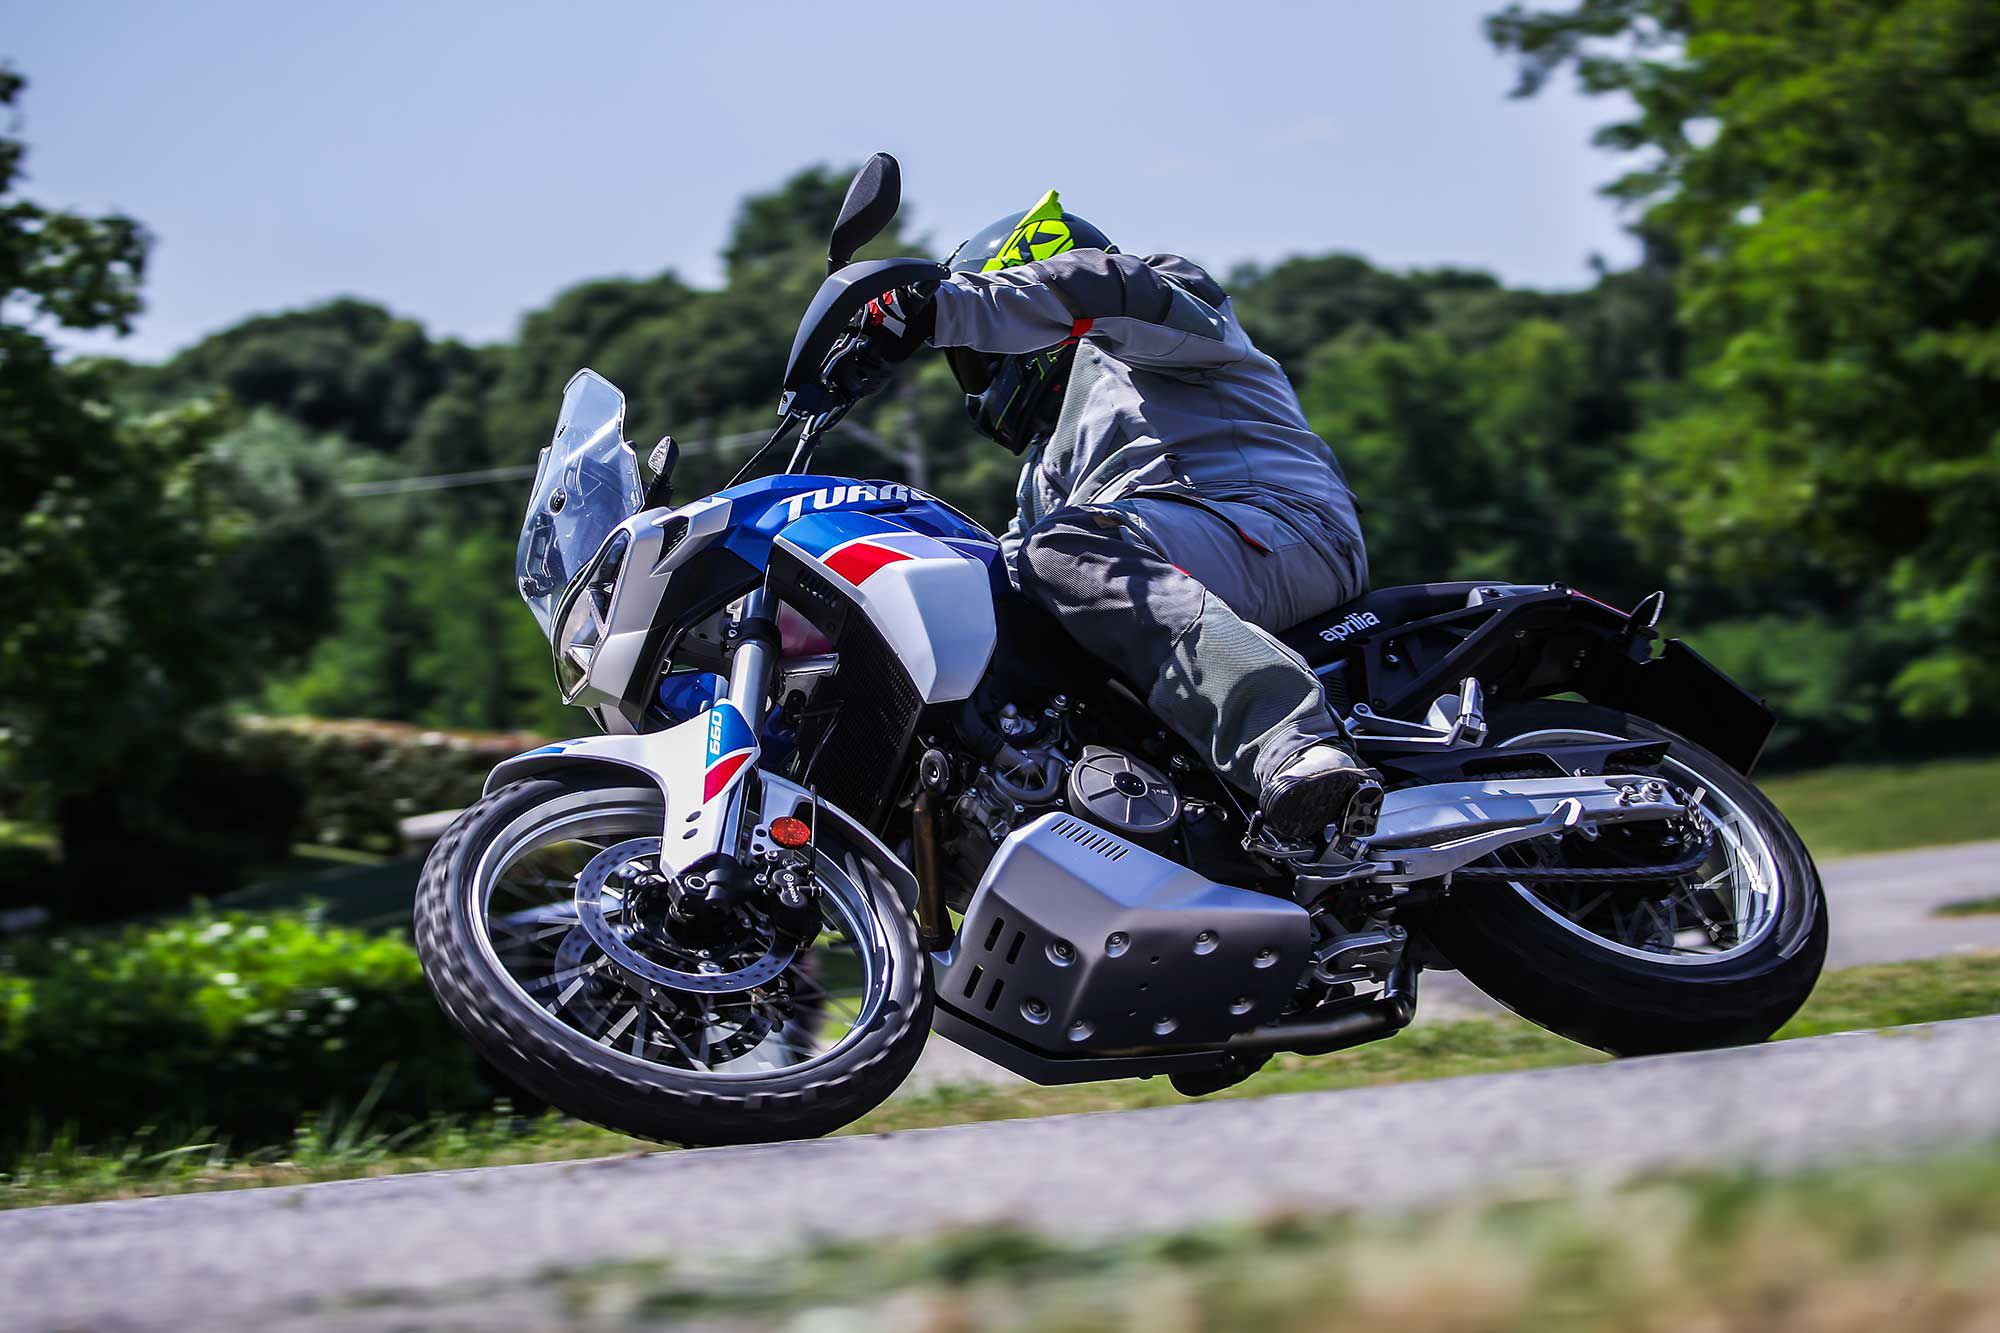 Front tire feel on the road is excellent on the Tuareg 660.